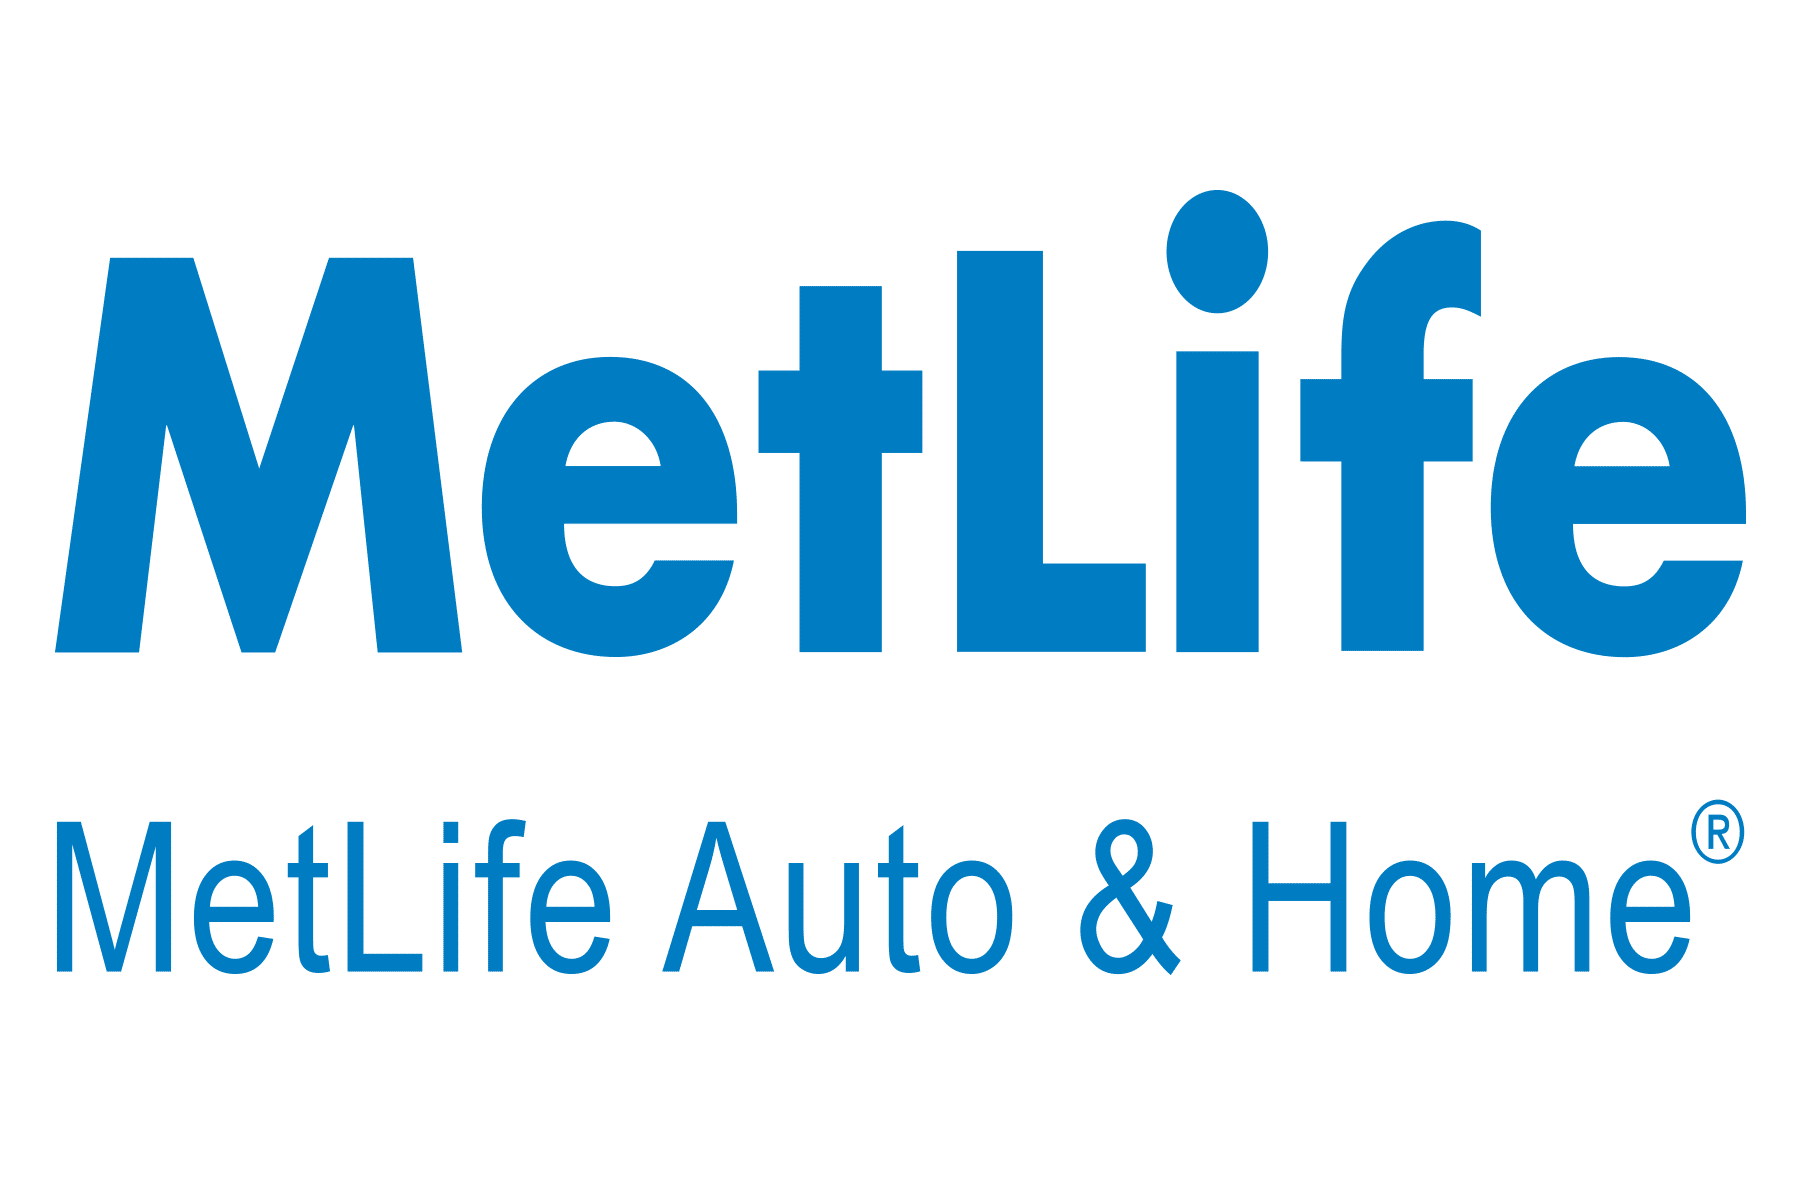 Metlife Insurance Rental Car